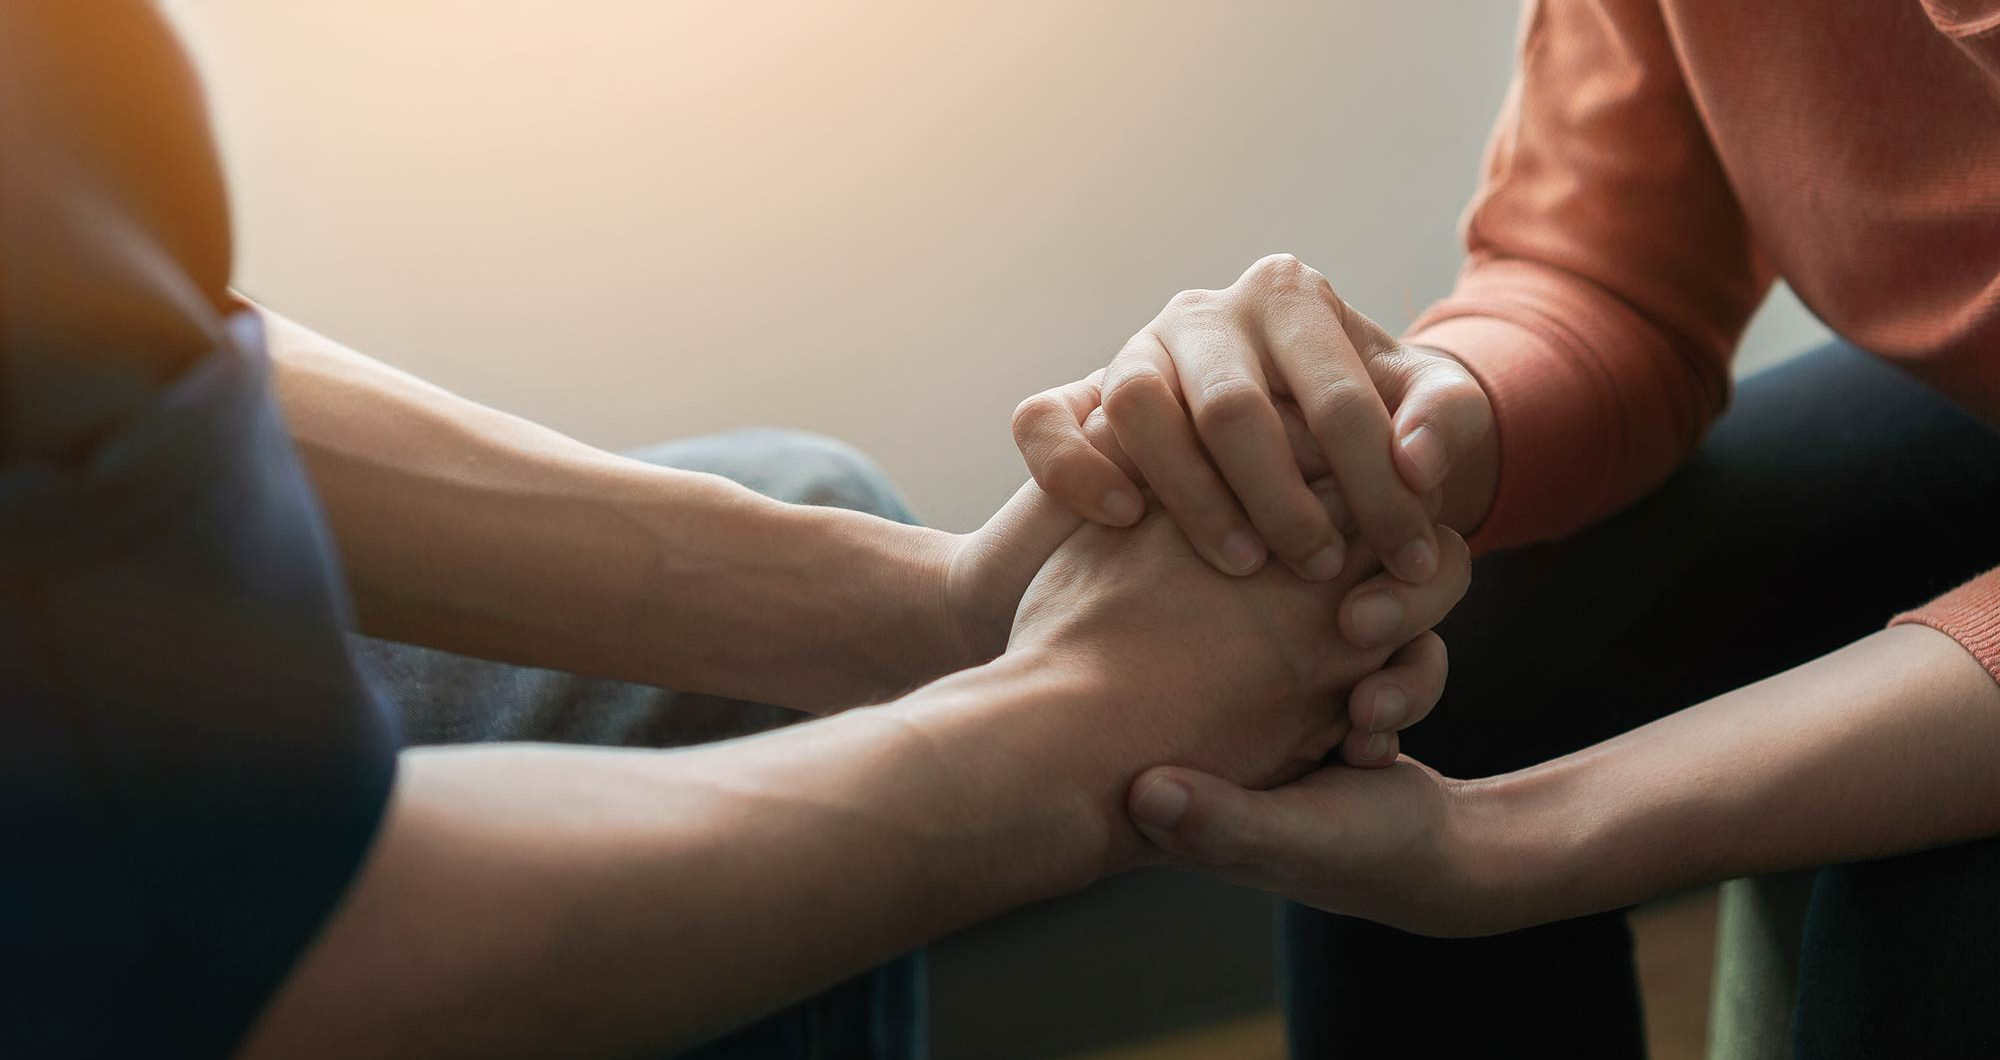 Dental professionals are urging struggling colleagues to reach out for mental health support